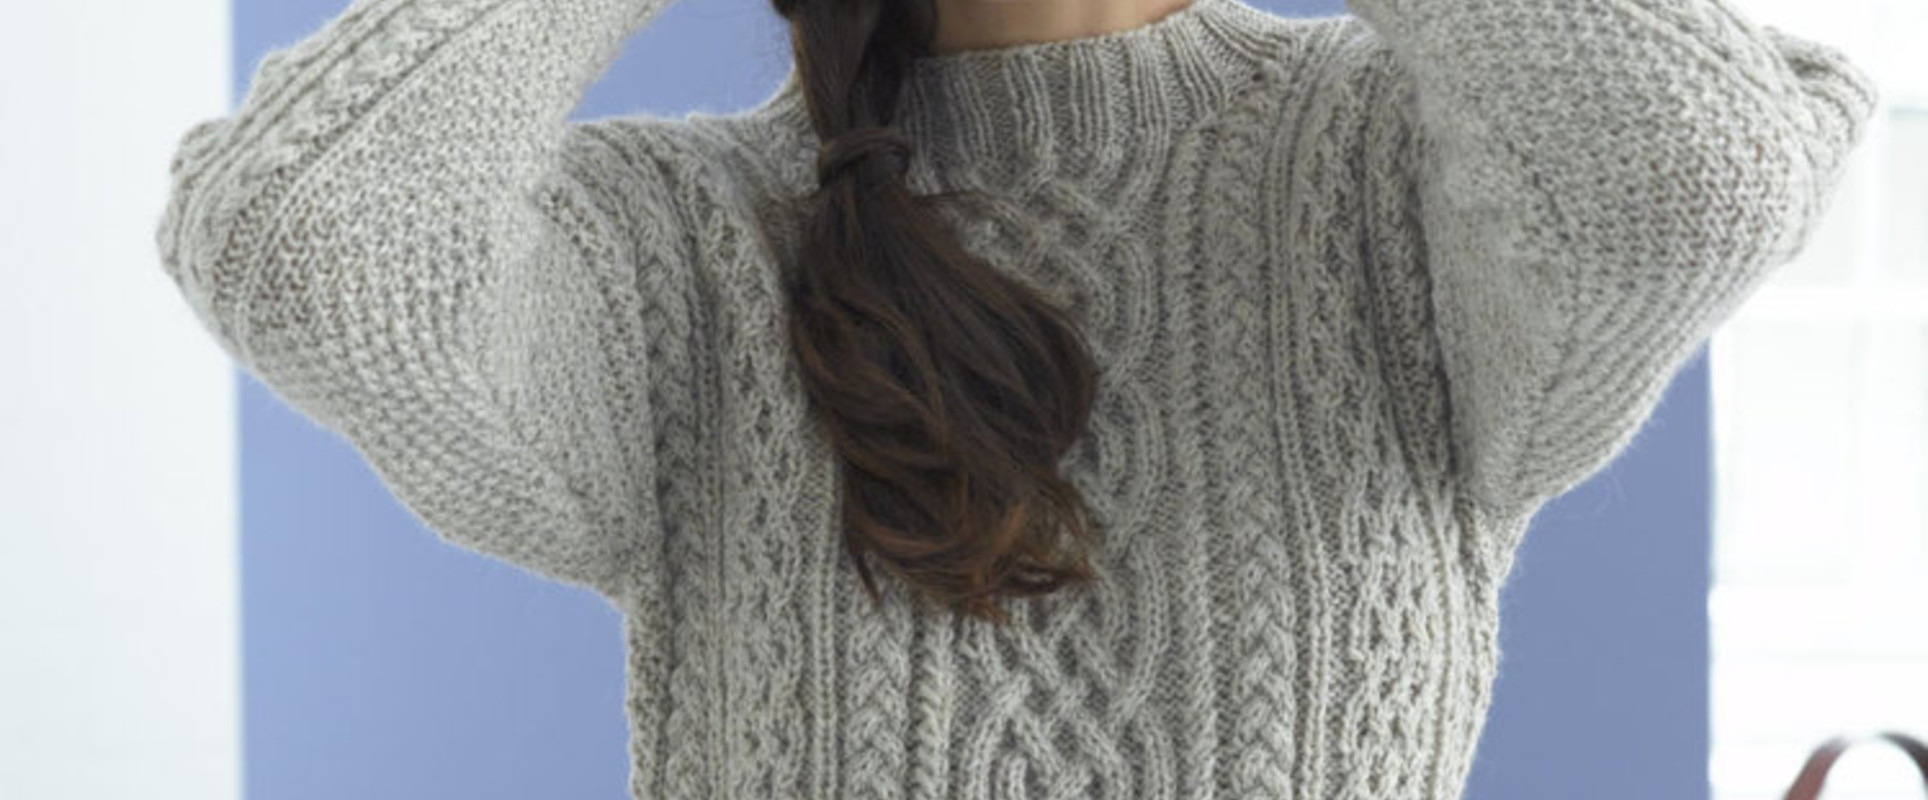 Free Sweater Patterns To Knit Top 5 Free Aran Jumper Knitting Patterns For Women Lovecrafts